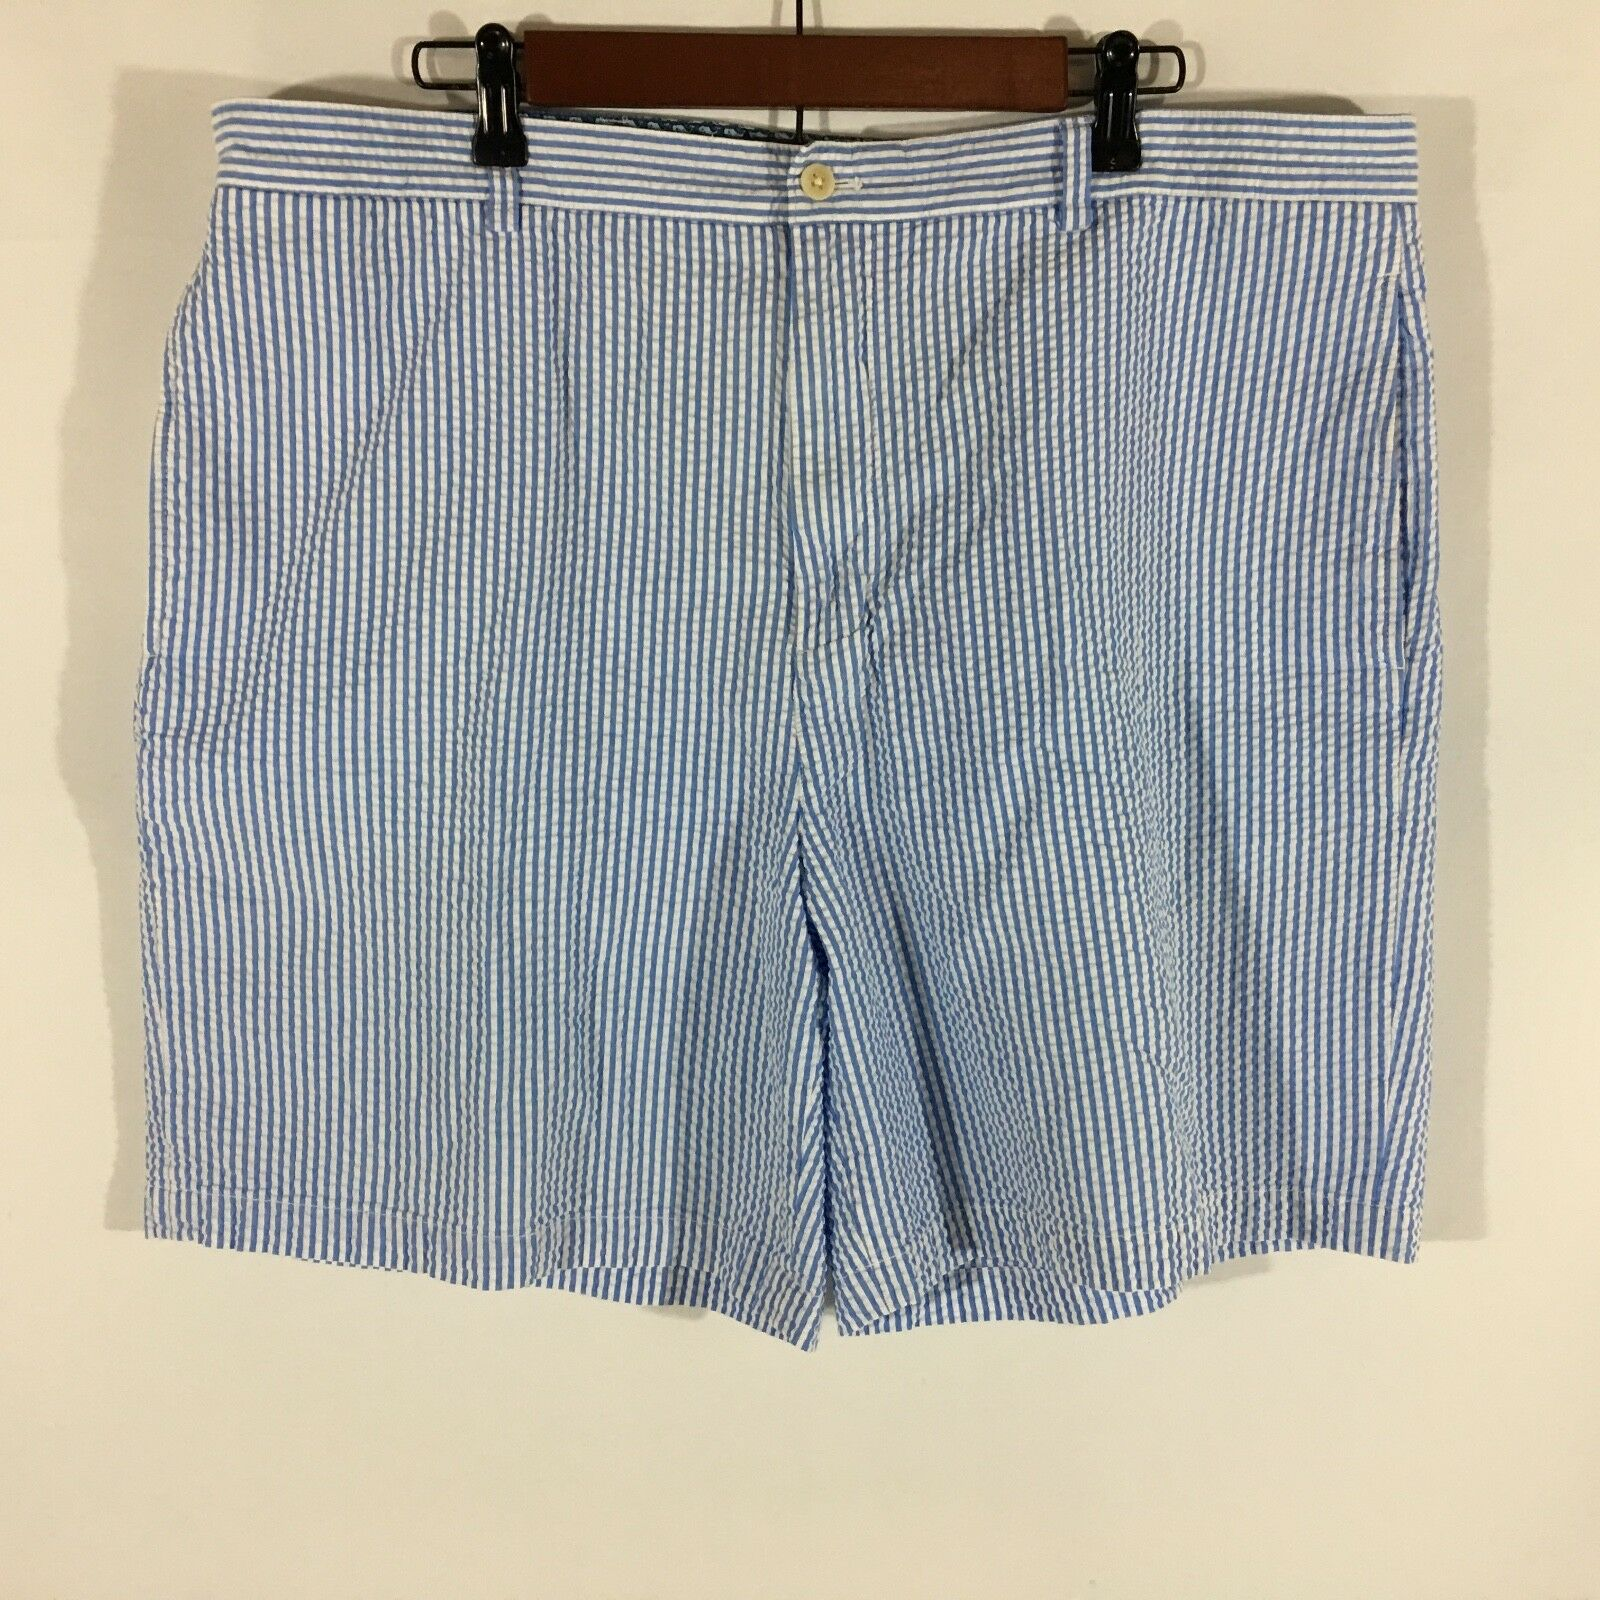 Vineyard Vines 100% Cotton bluee Men's Casual Shorts Waist 40 Inseam 8